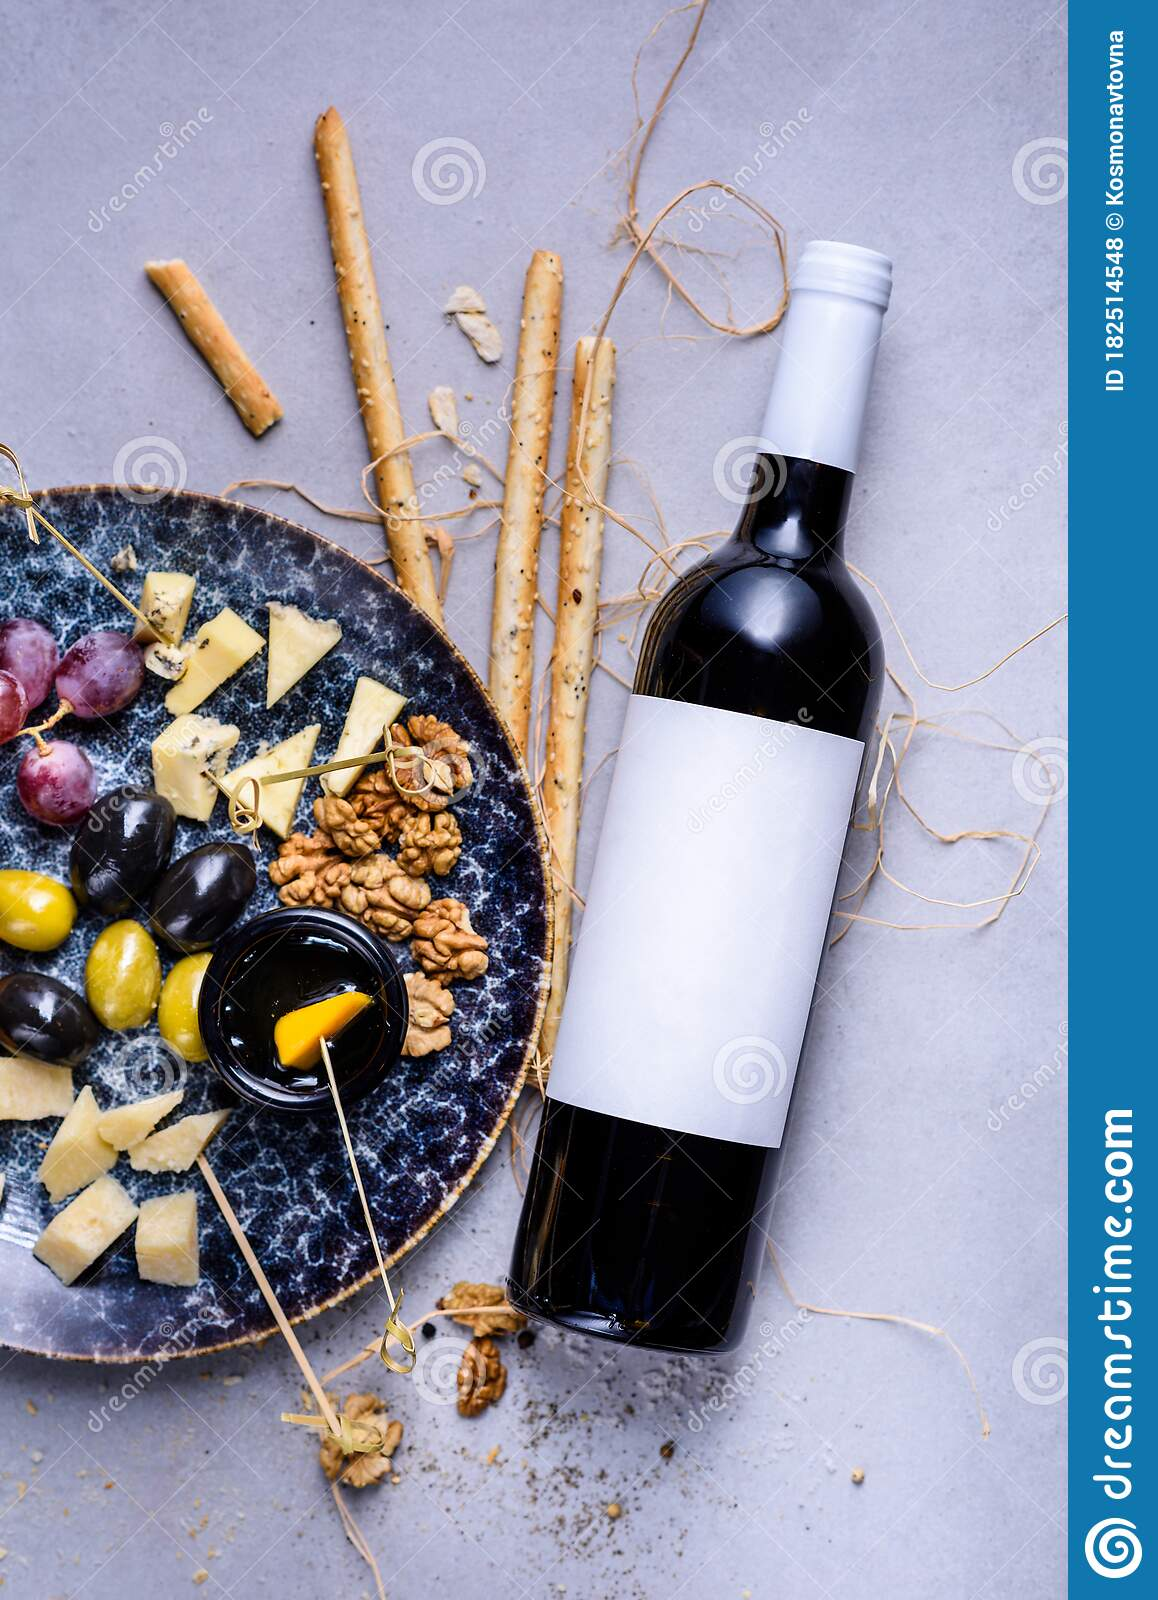 Cheese Plate With Grapes And Olives Snacks And Cheese Served With Bottle Of Wine Top View Copy Space Stock Photo Image Of Ingredient Flat 182514548